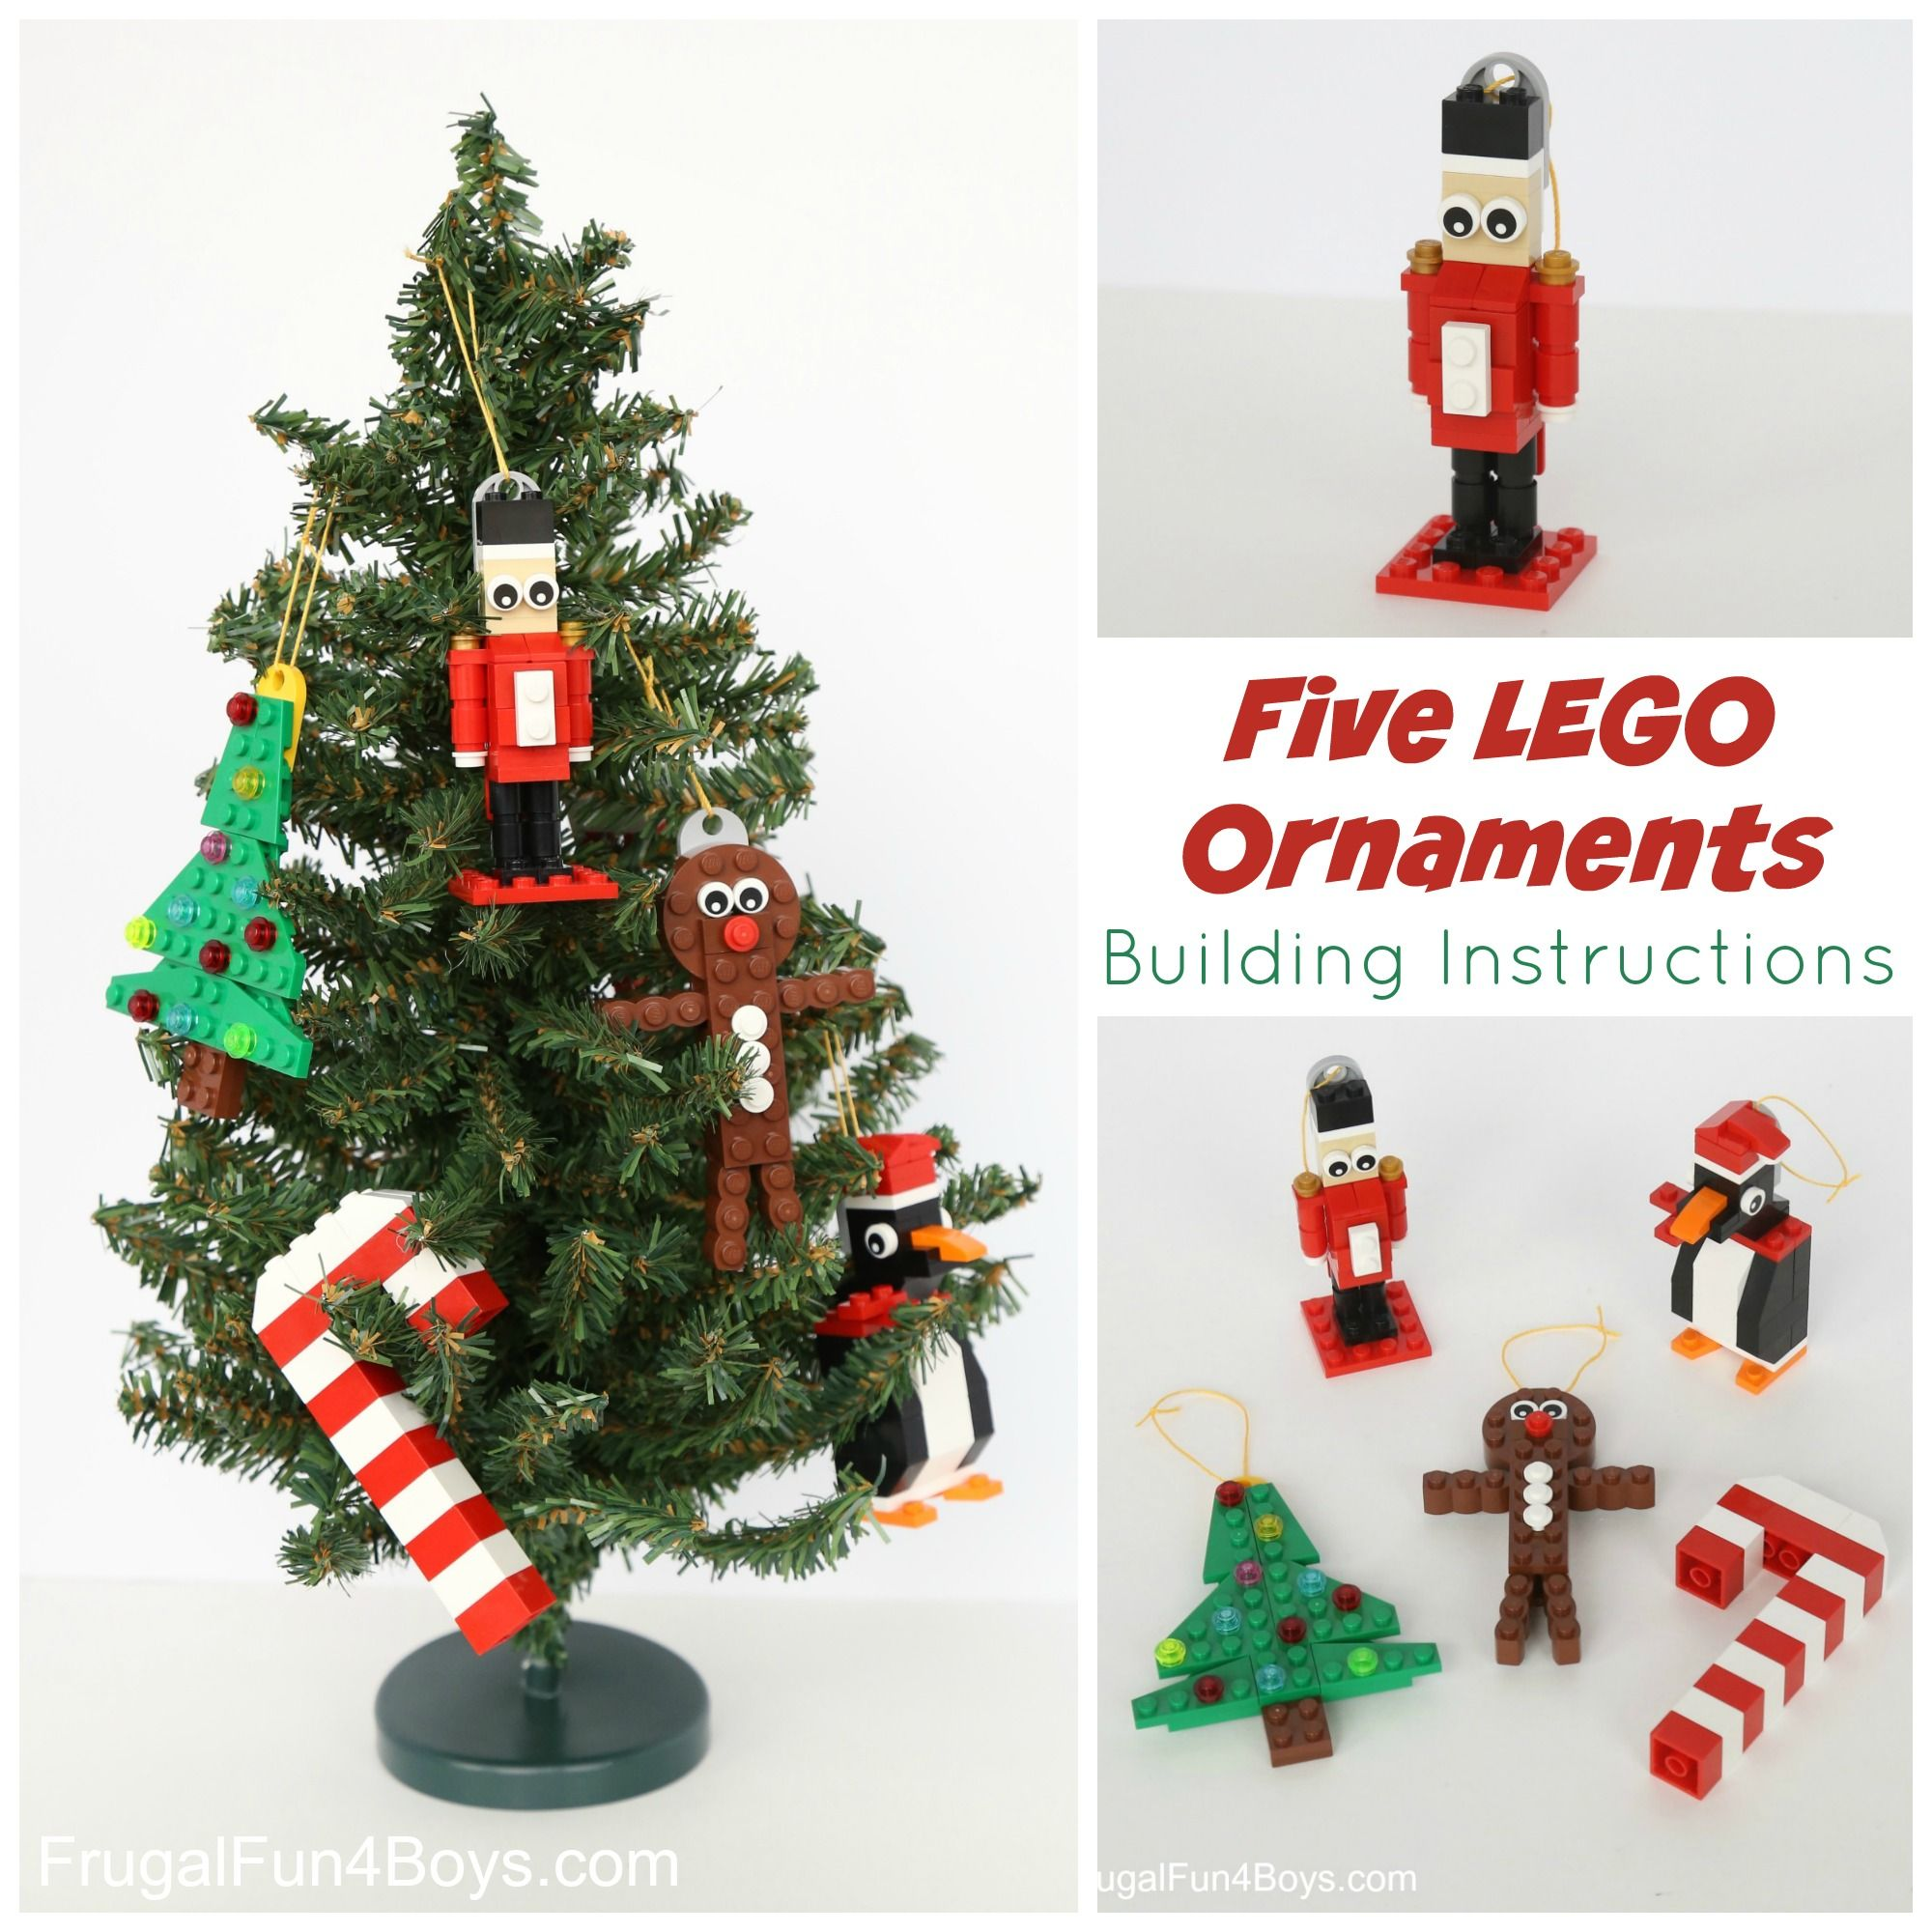 Five Lego Christmas Ornaments To Make With Building Instructions Frugal Fun For Boys And Girls Lego Christmas Ornaments Lego Christmas Christmas Ornaments To Make